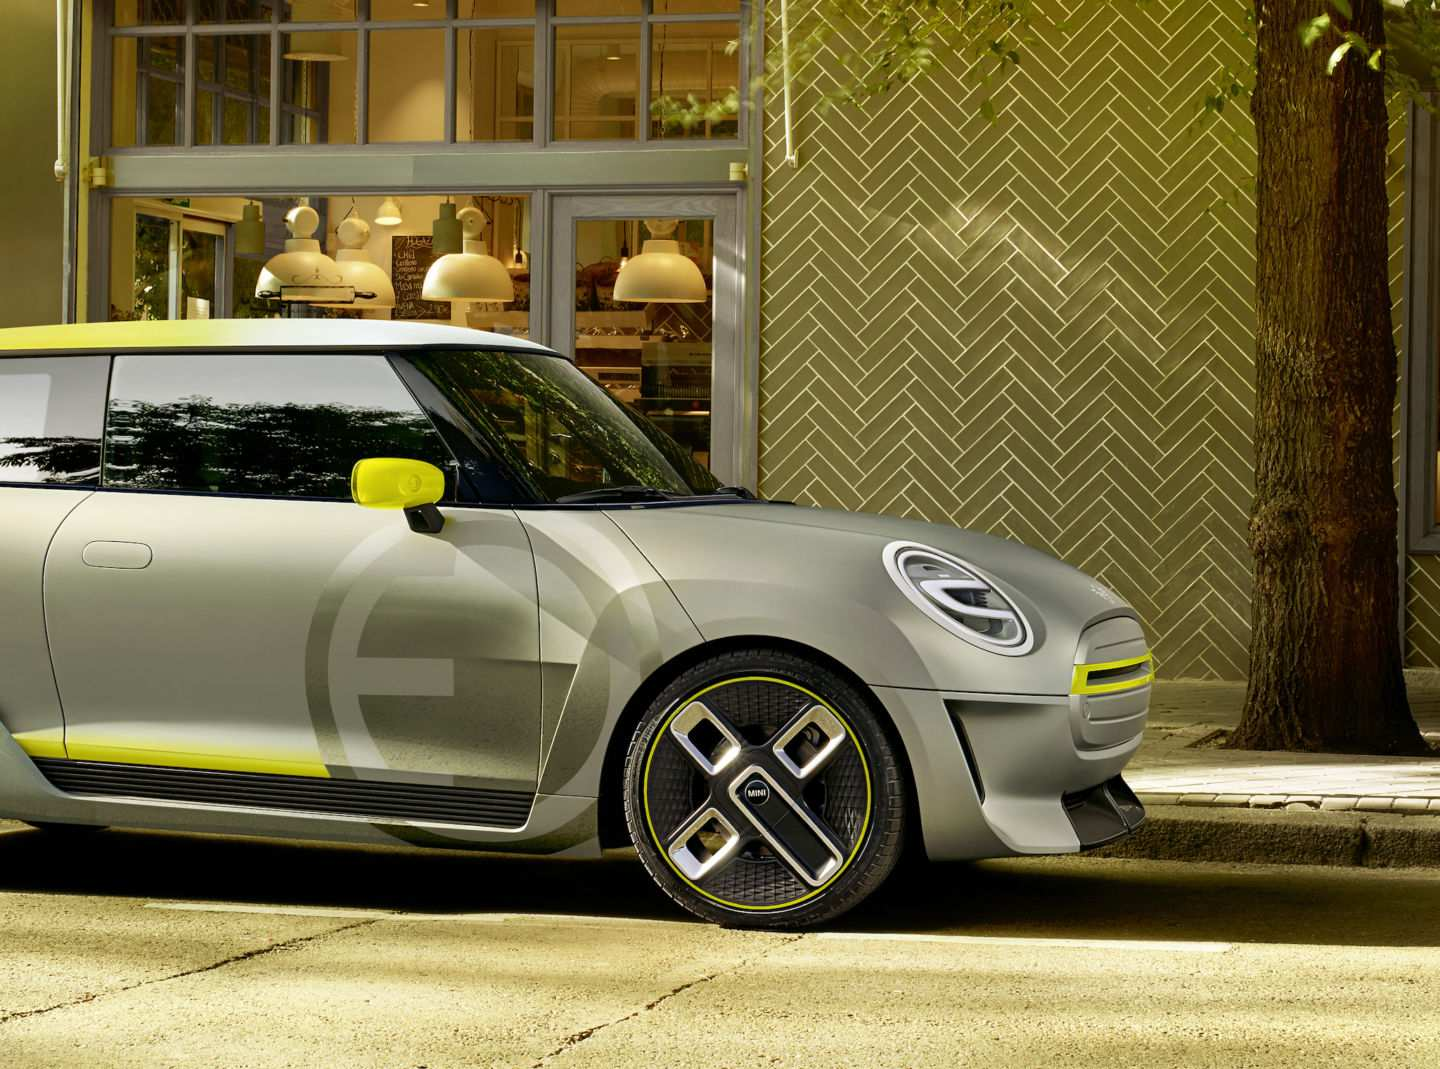 22 New 2019 Electric Mini Cooper Price and Review by 2019 Electric Mini Cooper